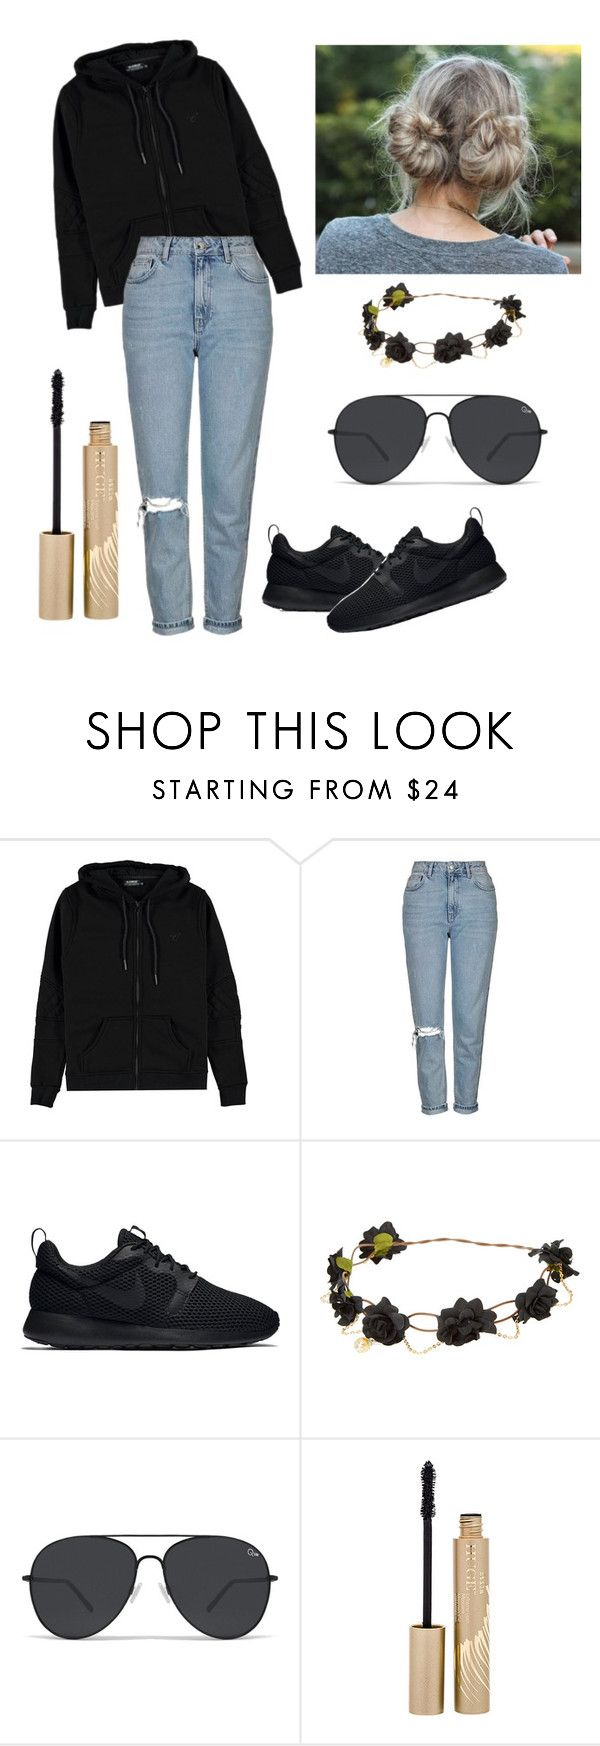 """""""Untitled #41"""" by ayoo-tj ❤ liked on Polyvore featuring Voi Jeans, Topshop, NIKE and Stila"""